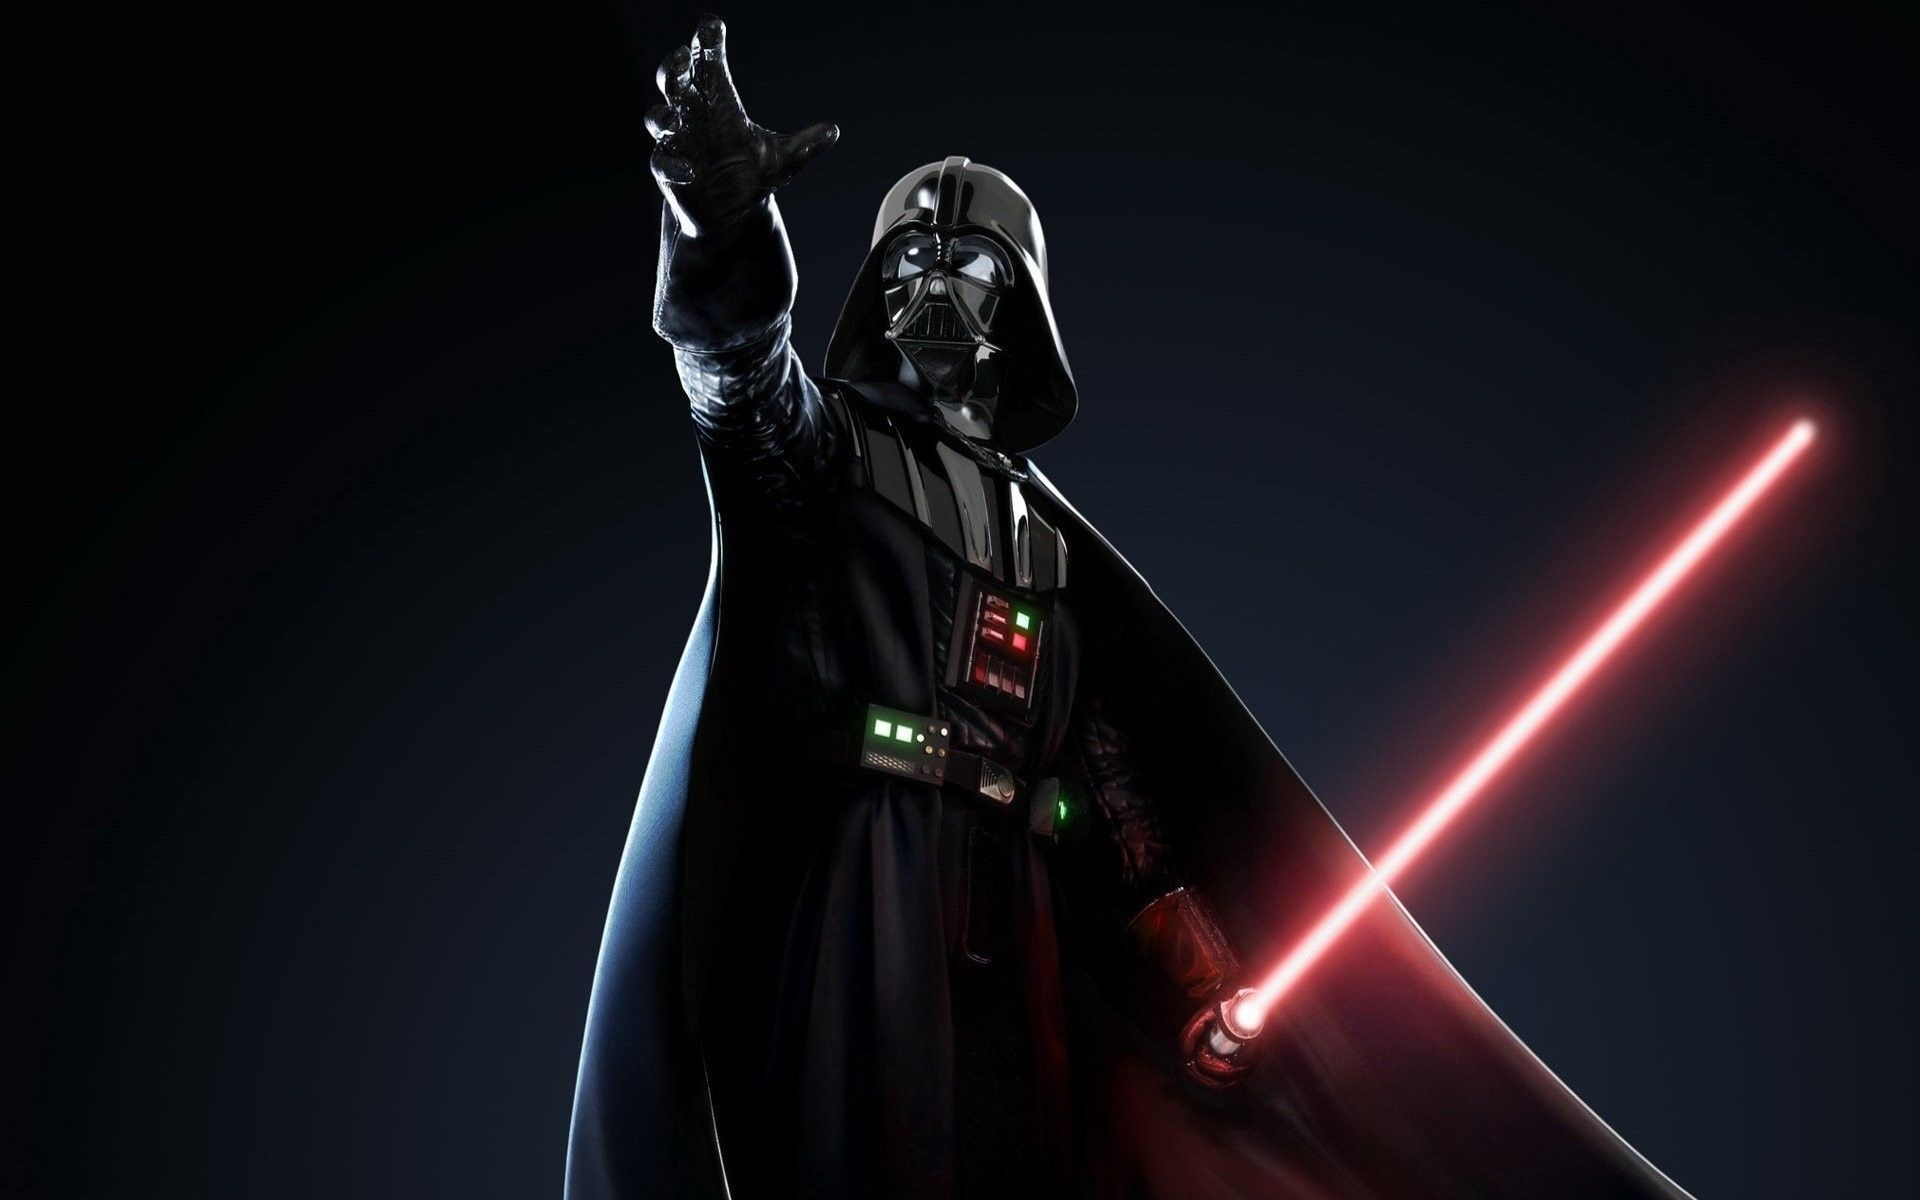 Darth Vader Wallpapers Top Free Darth Vader Backgrounds